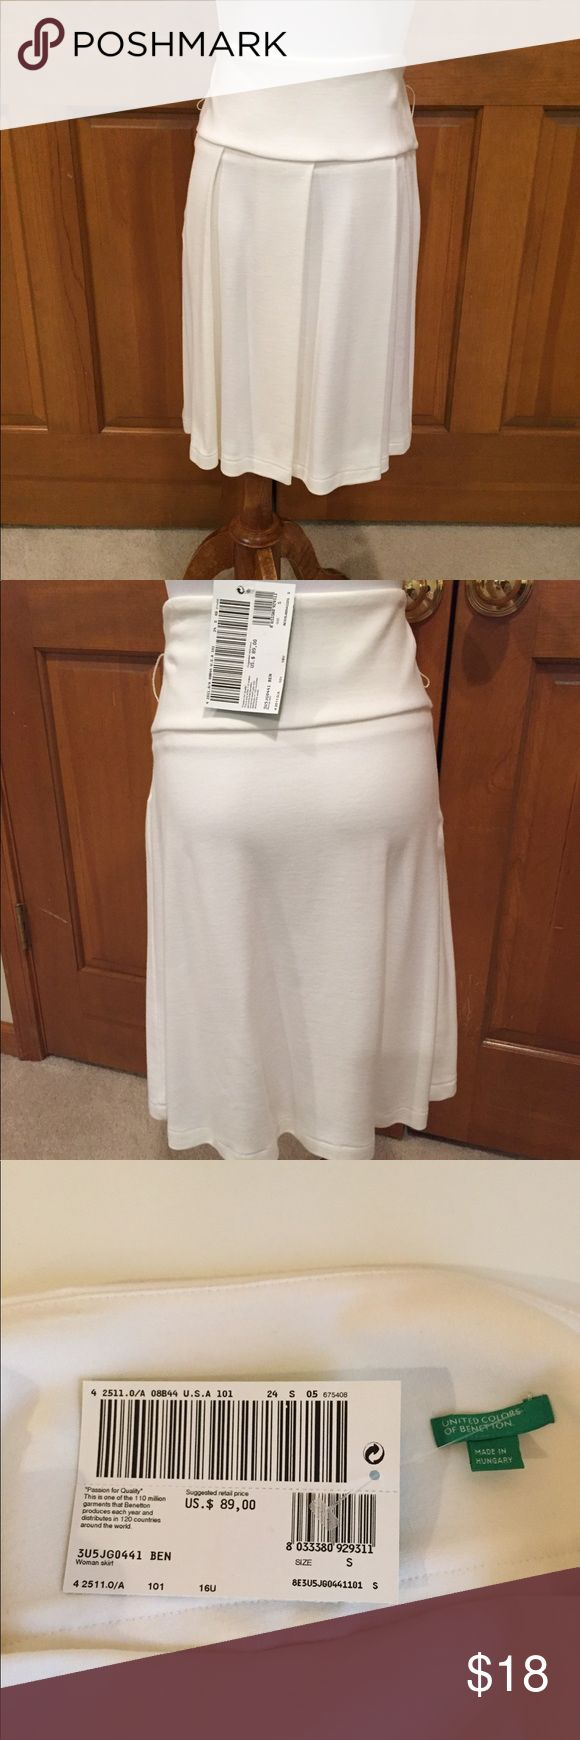 """Benetton NWT Cream Knit Skirt Super soft cream knit skirt by Benetton. Size Small measures 14 1/2"""" across waist and   """" in length. Flattering pleats. Great for the office. Just listed! United Colors Of Benetton Skirts A-Line or Full"""